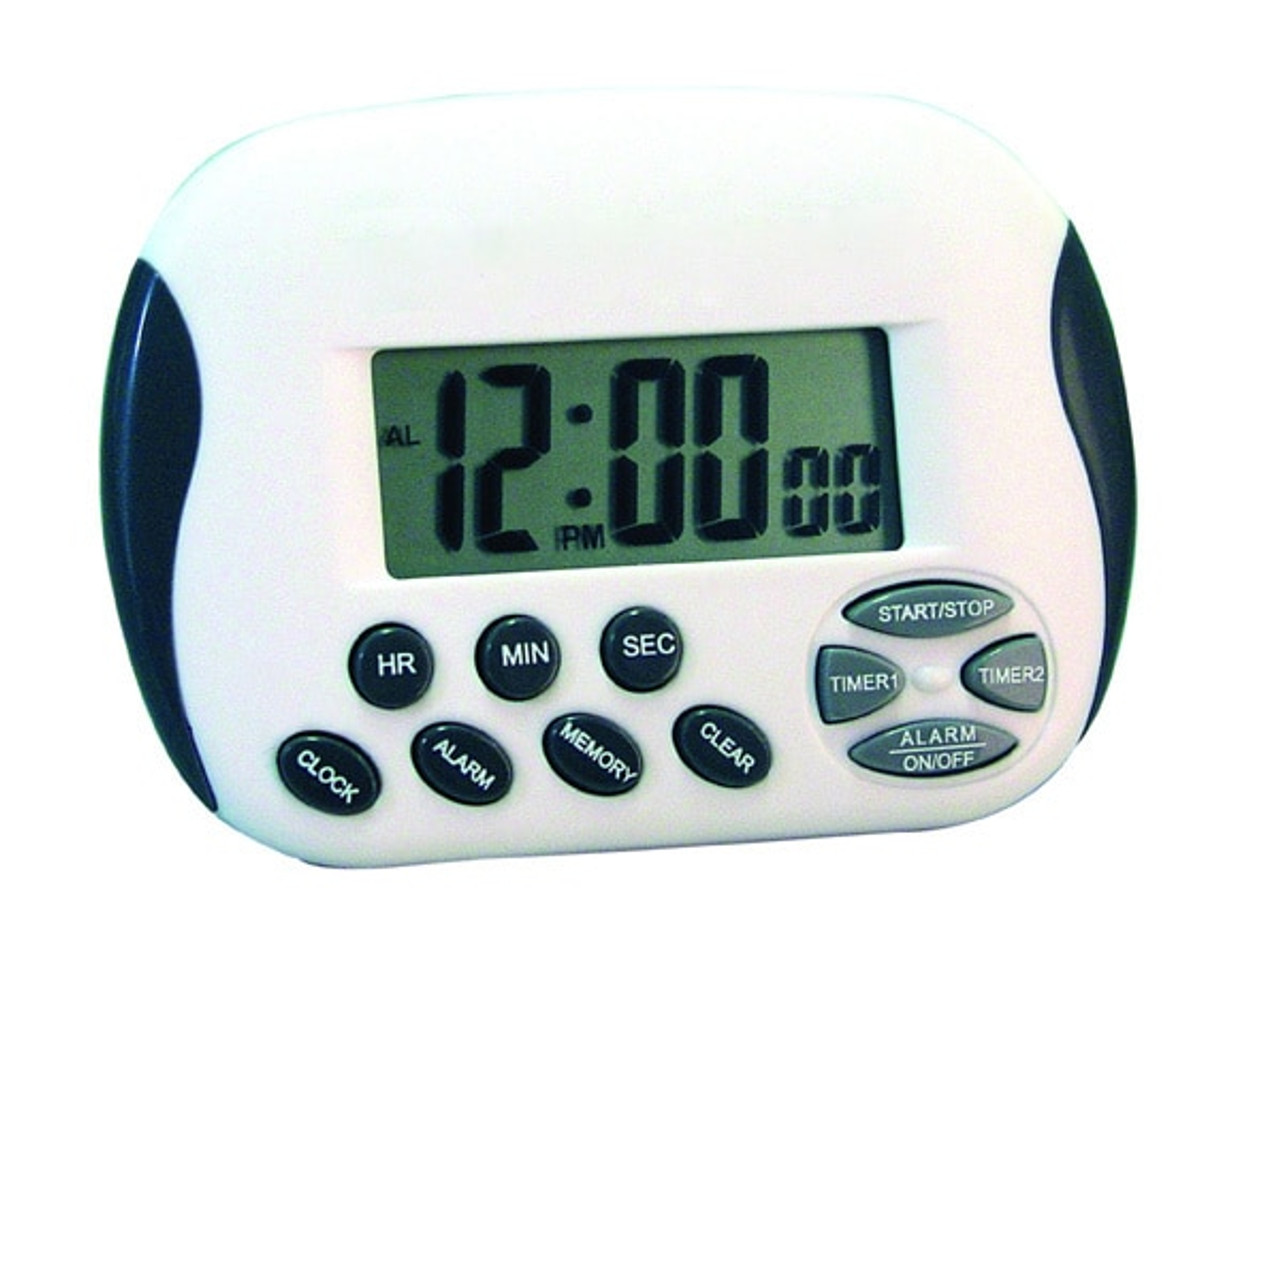 CARVEN 0297330 DIGITAL TIMER